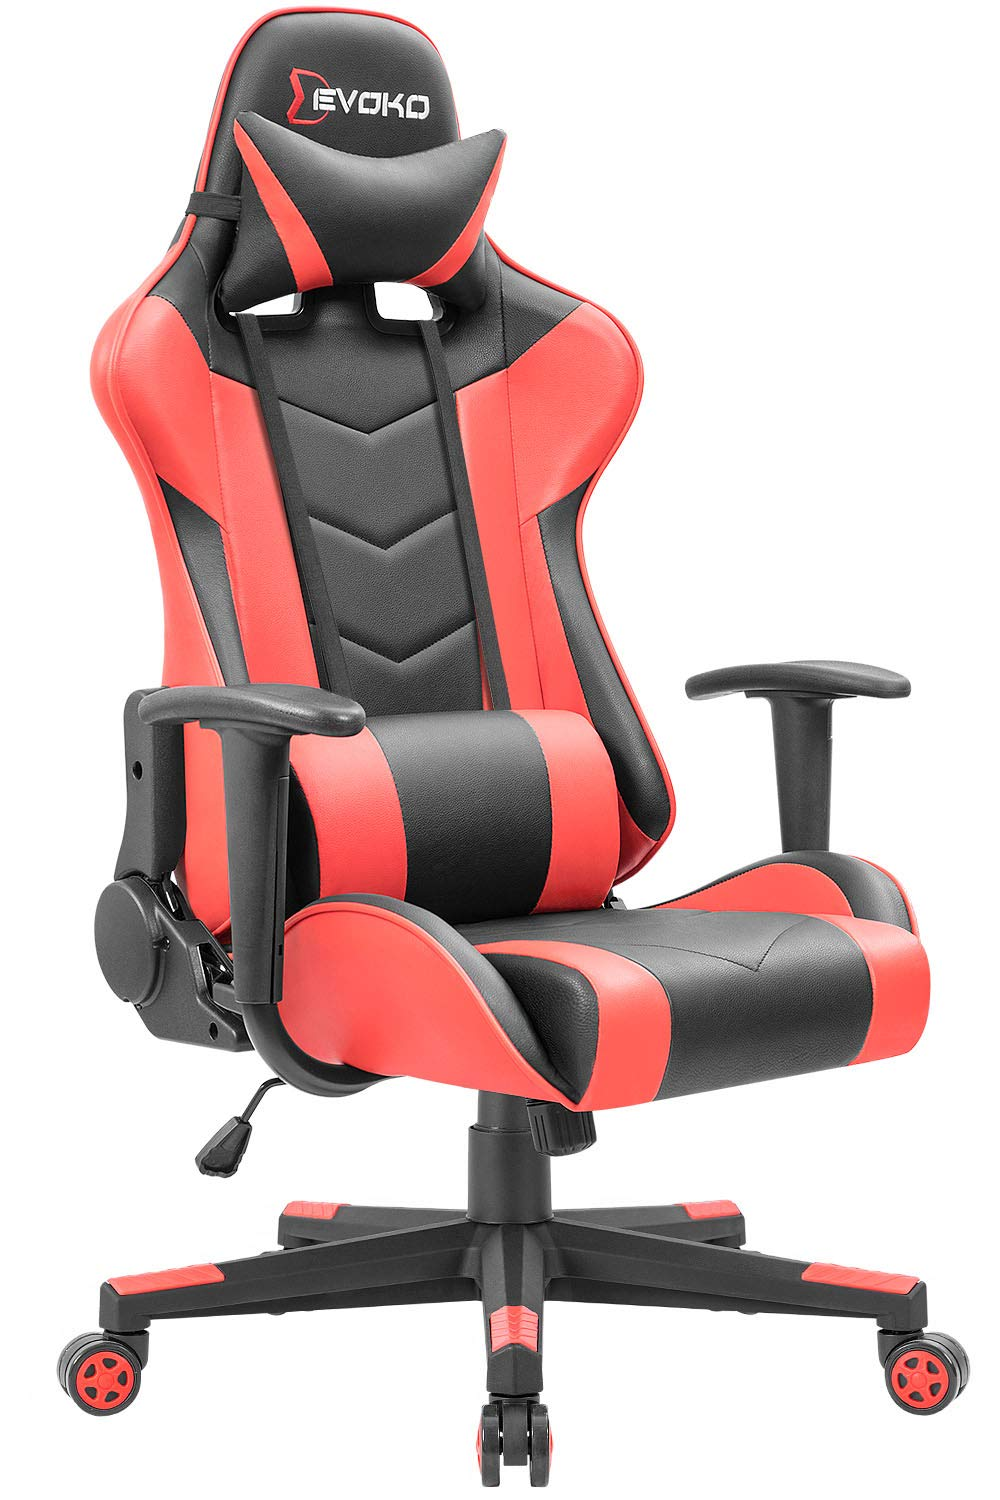 gaming chair red amazon com rh amazon com red top channel swimming red top channel swimming